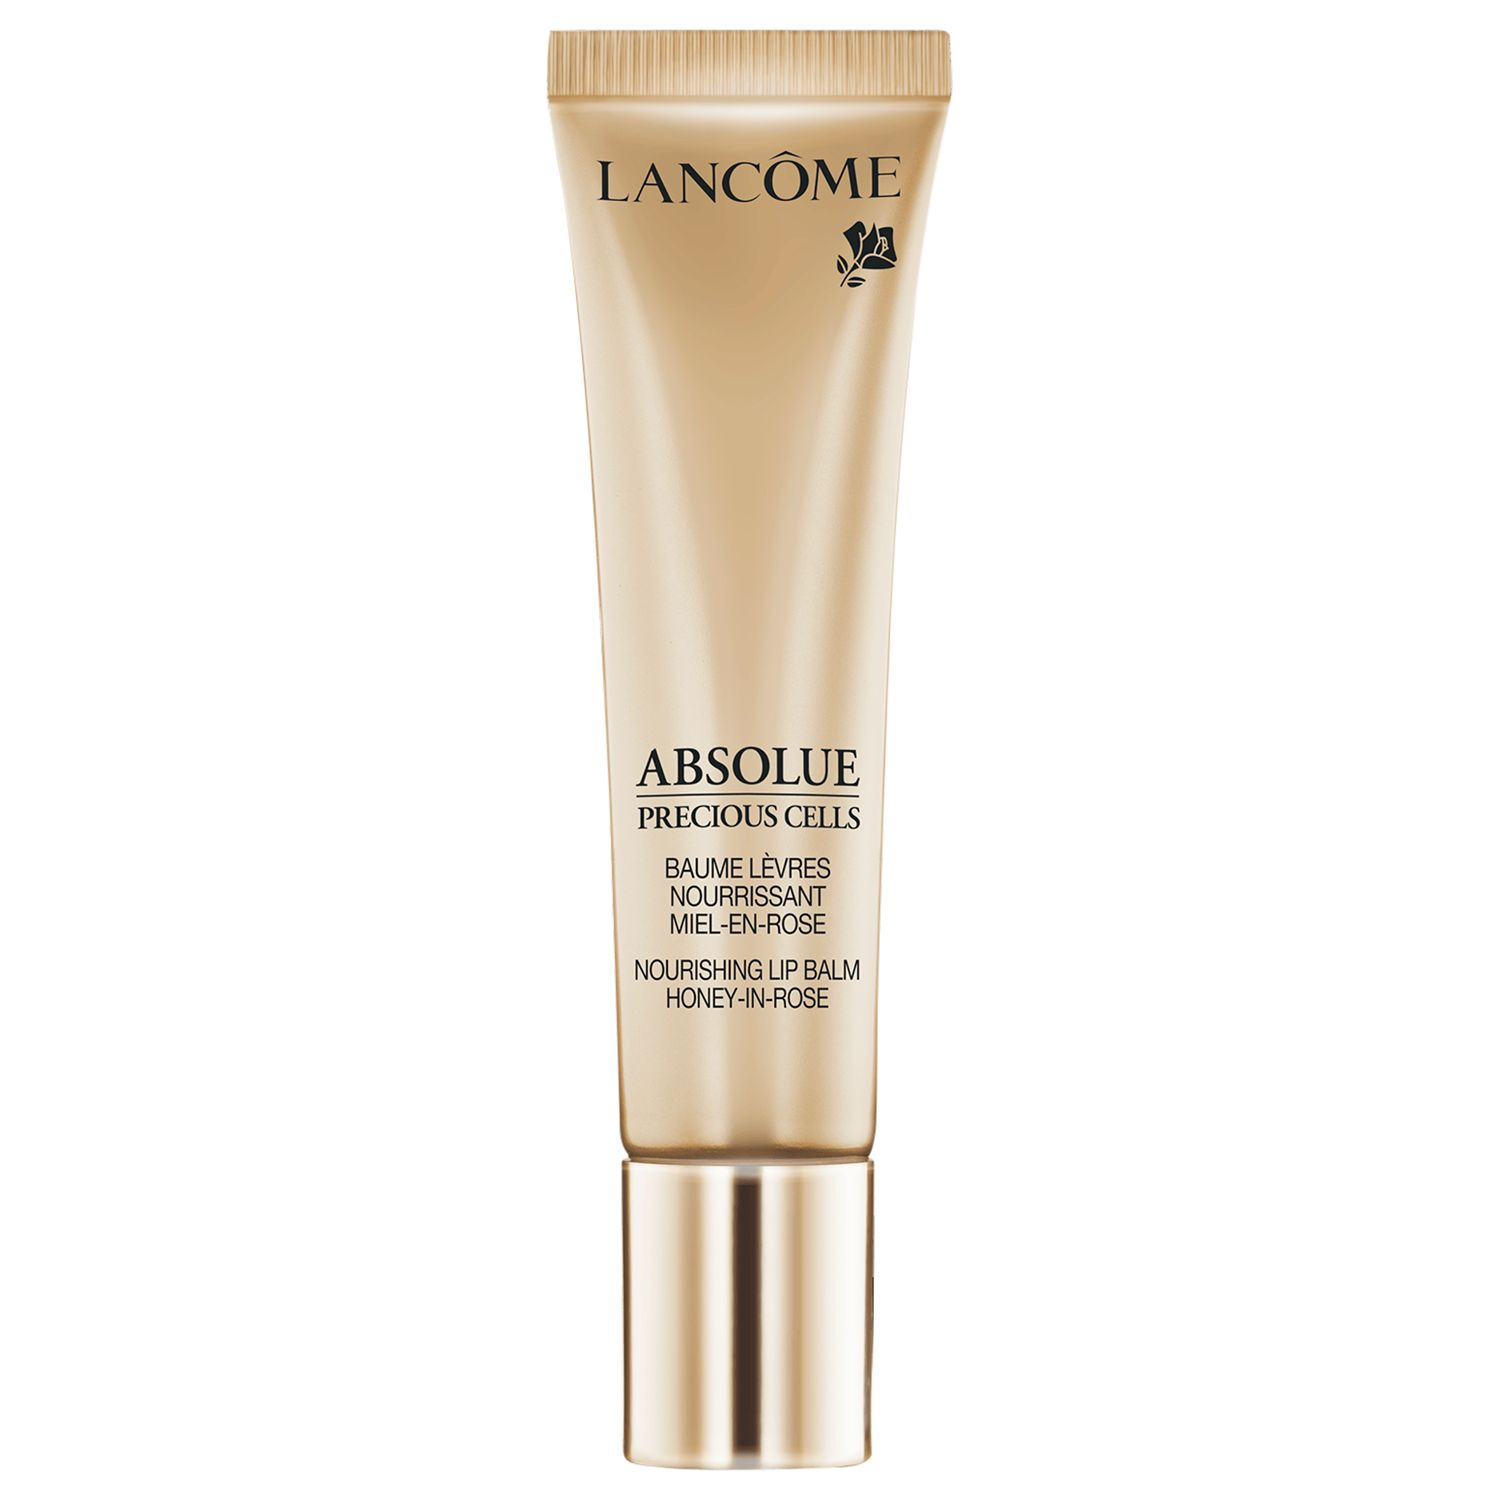 Lancome Lancôme Absolue Precious Cells Silky Lip Cream, 15ml